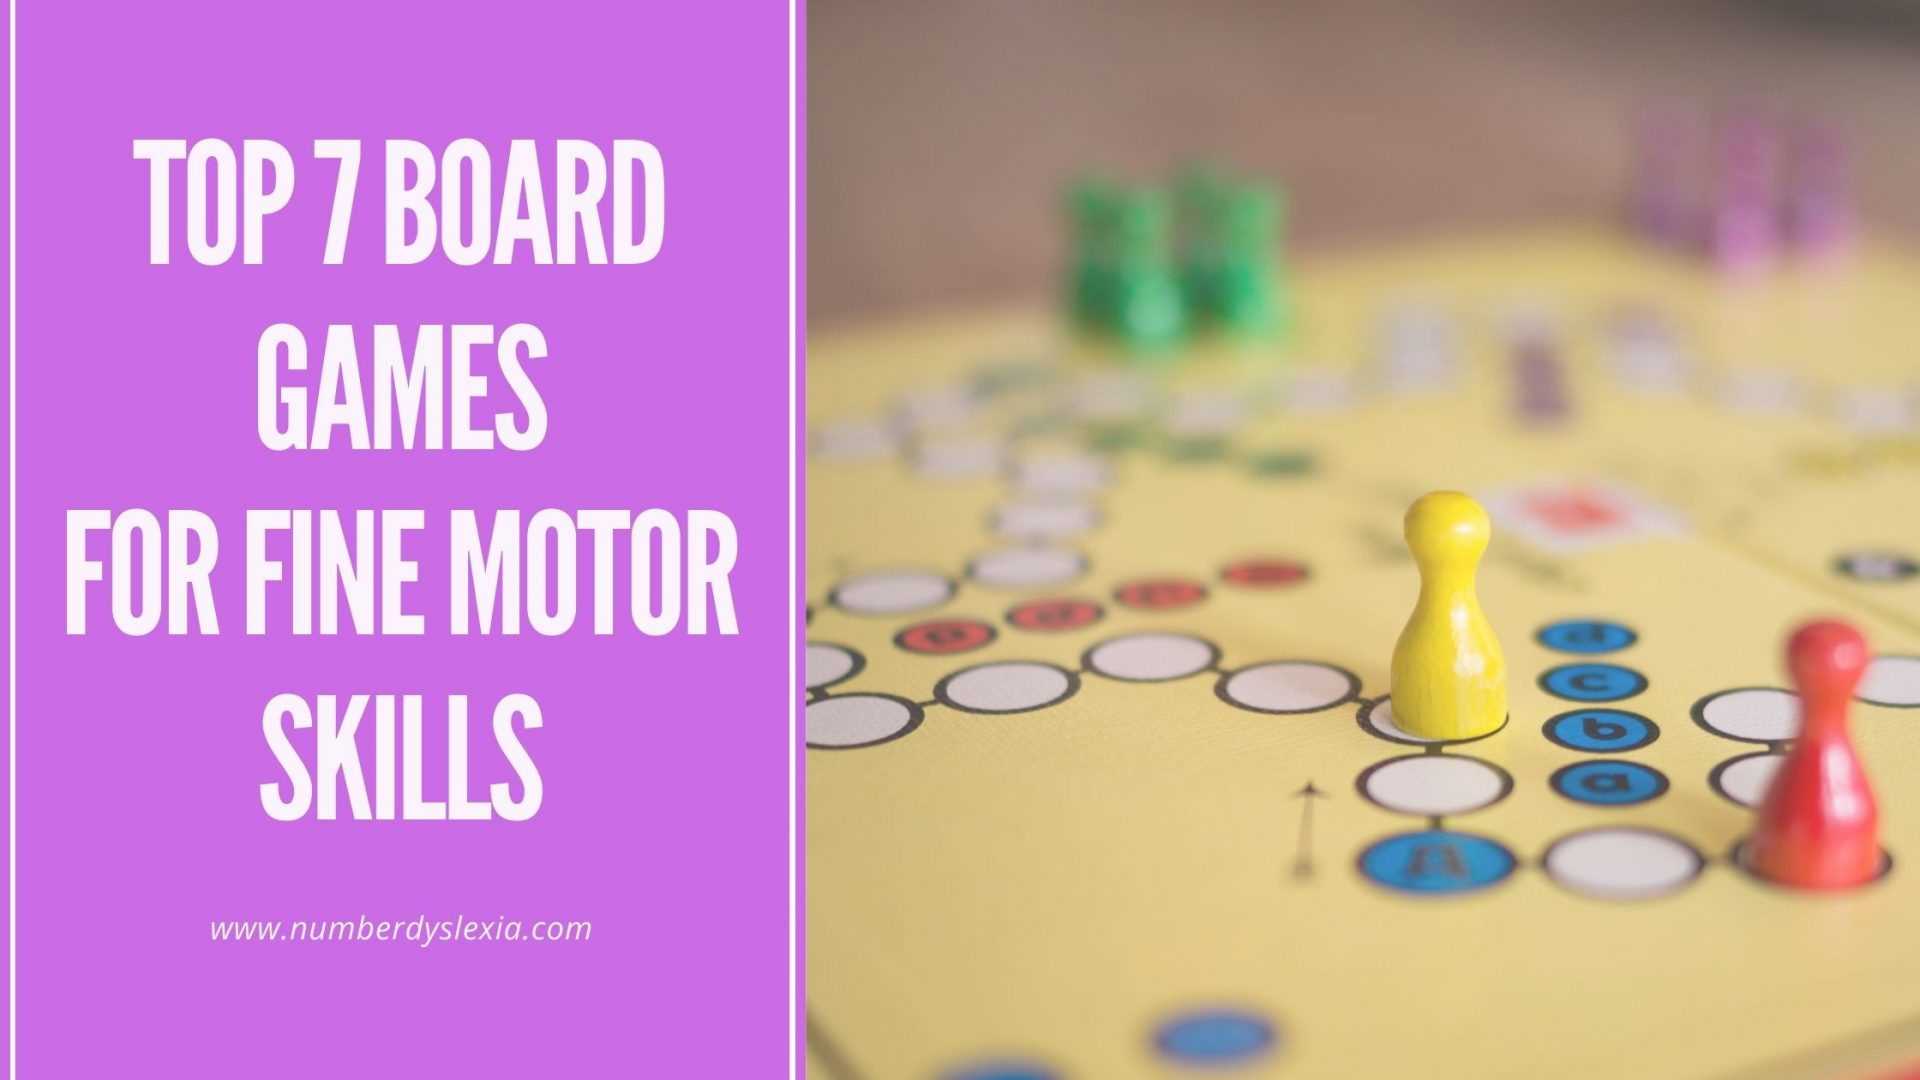 List of top 7 board games for building fine motor skills in children